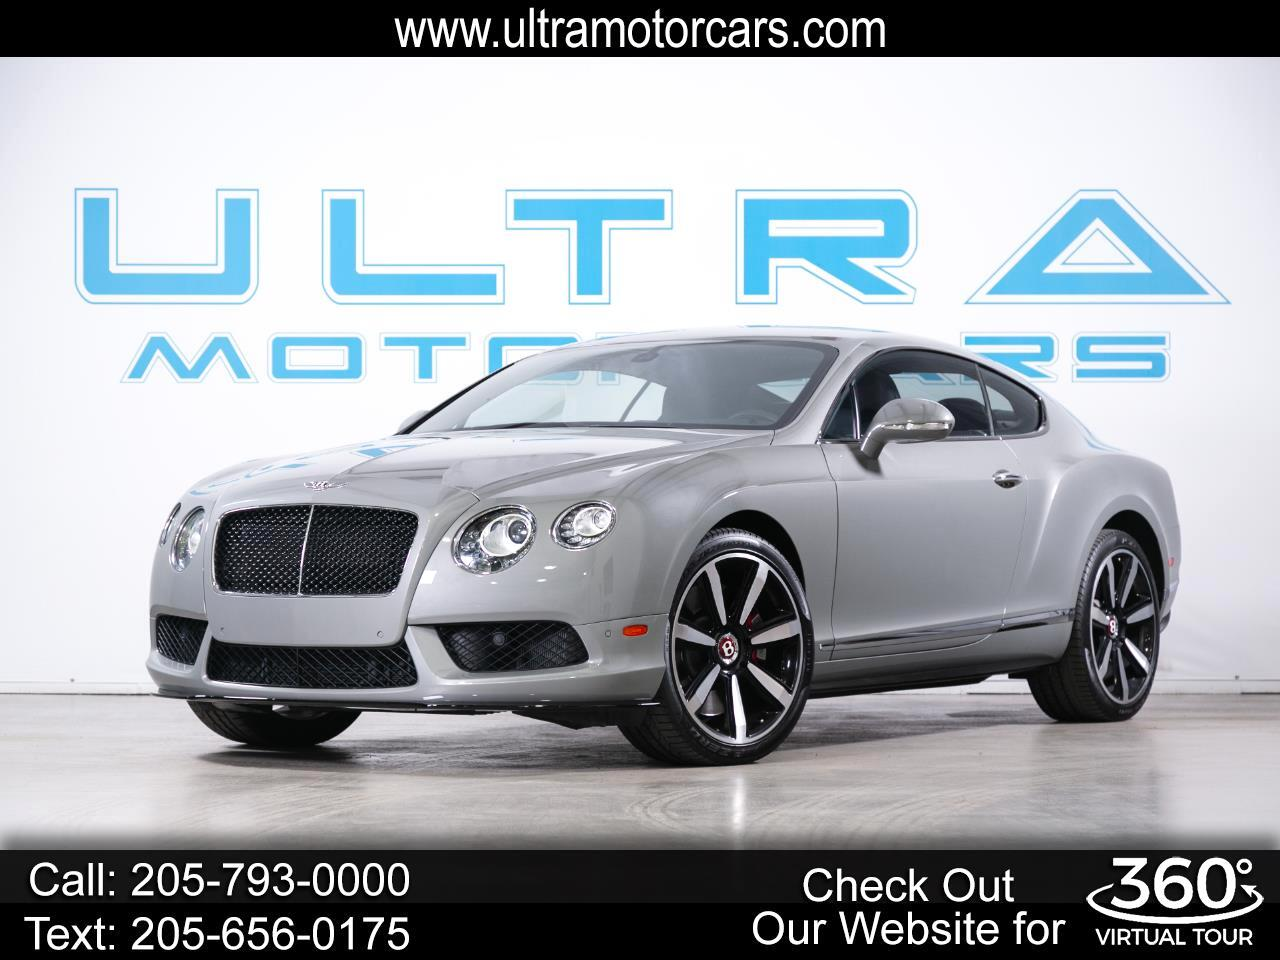 Bentley Continental GT V8 S 2dr Cpe 2015